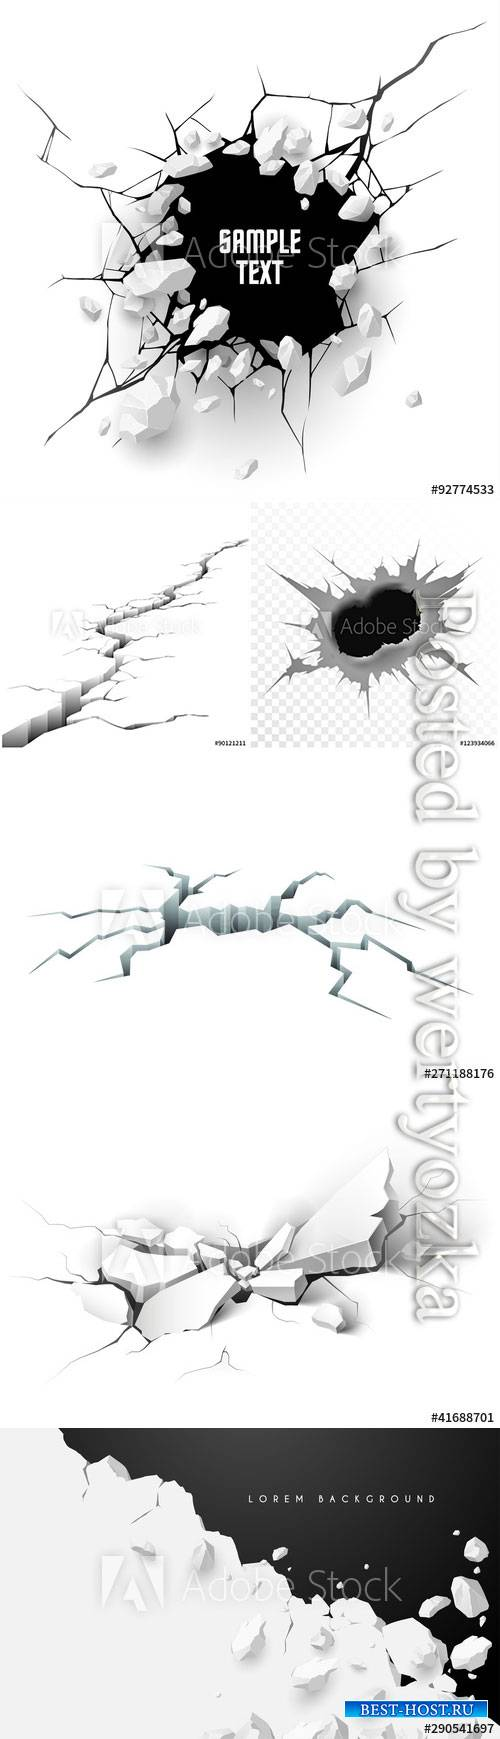 Cracked ground vector illustration isolated on white background